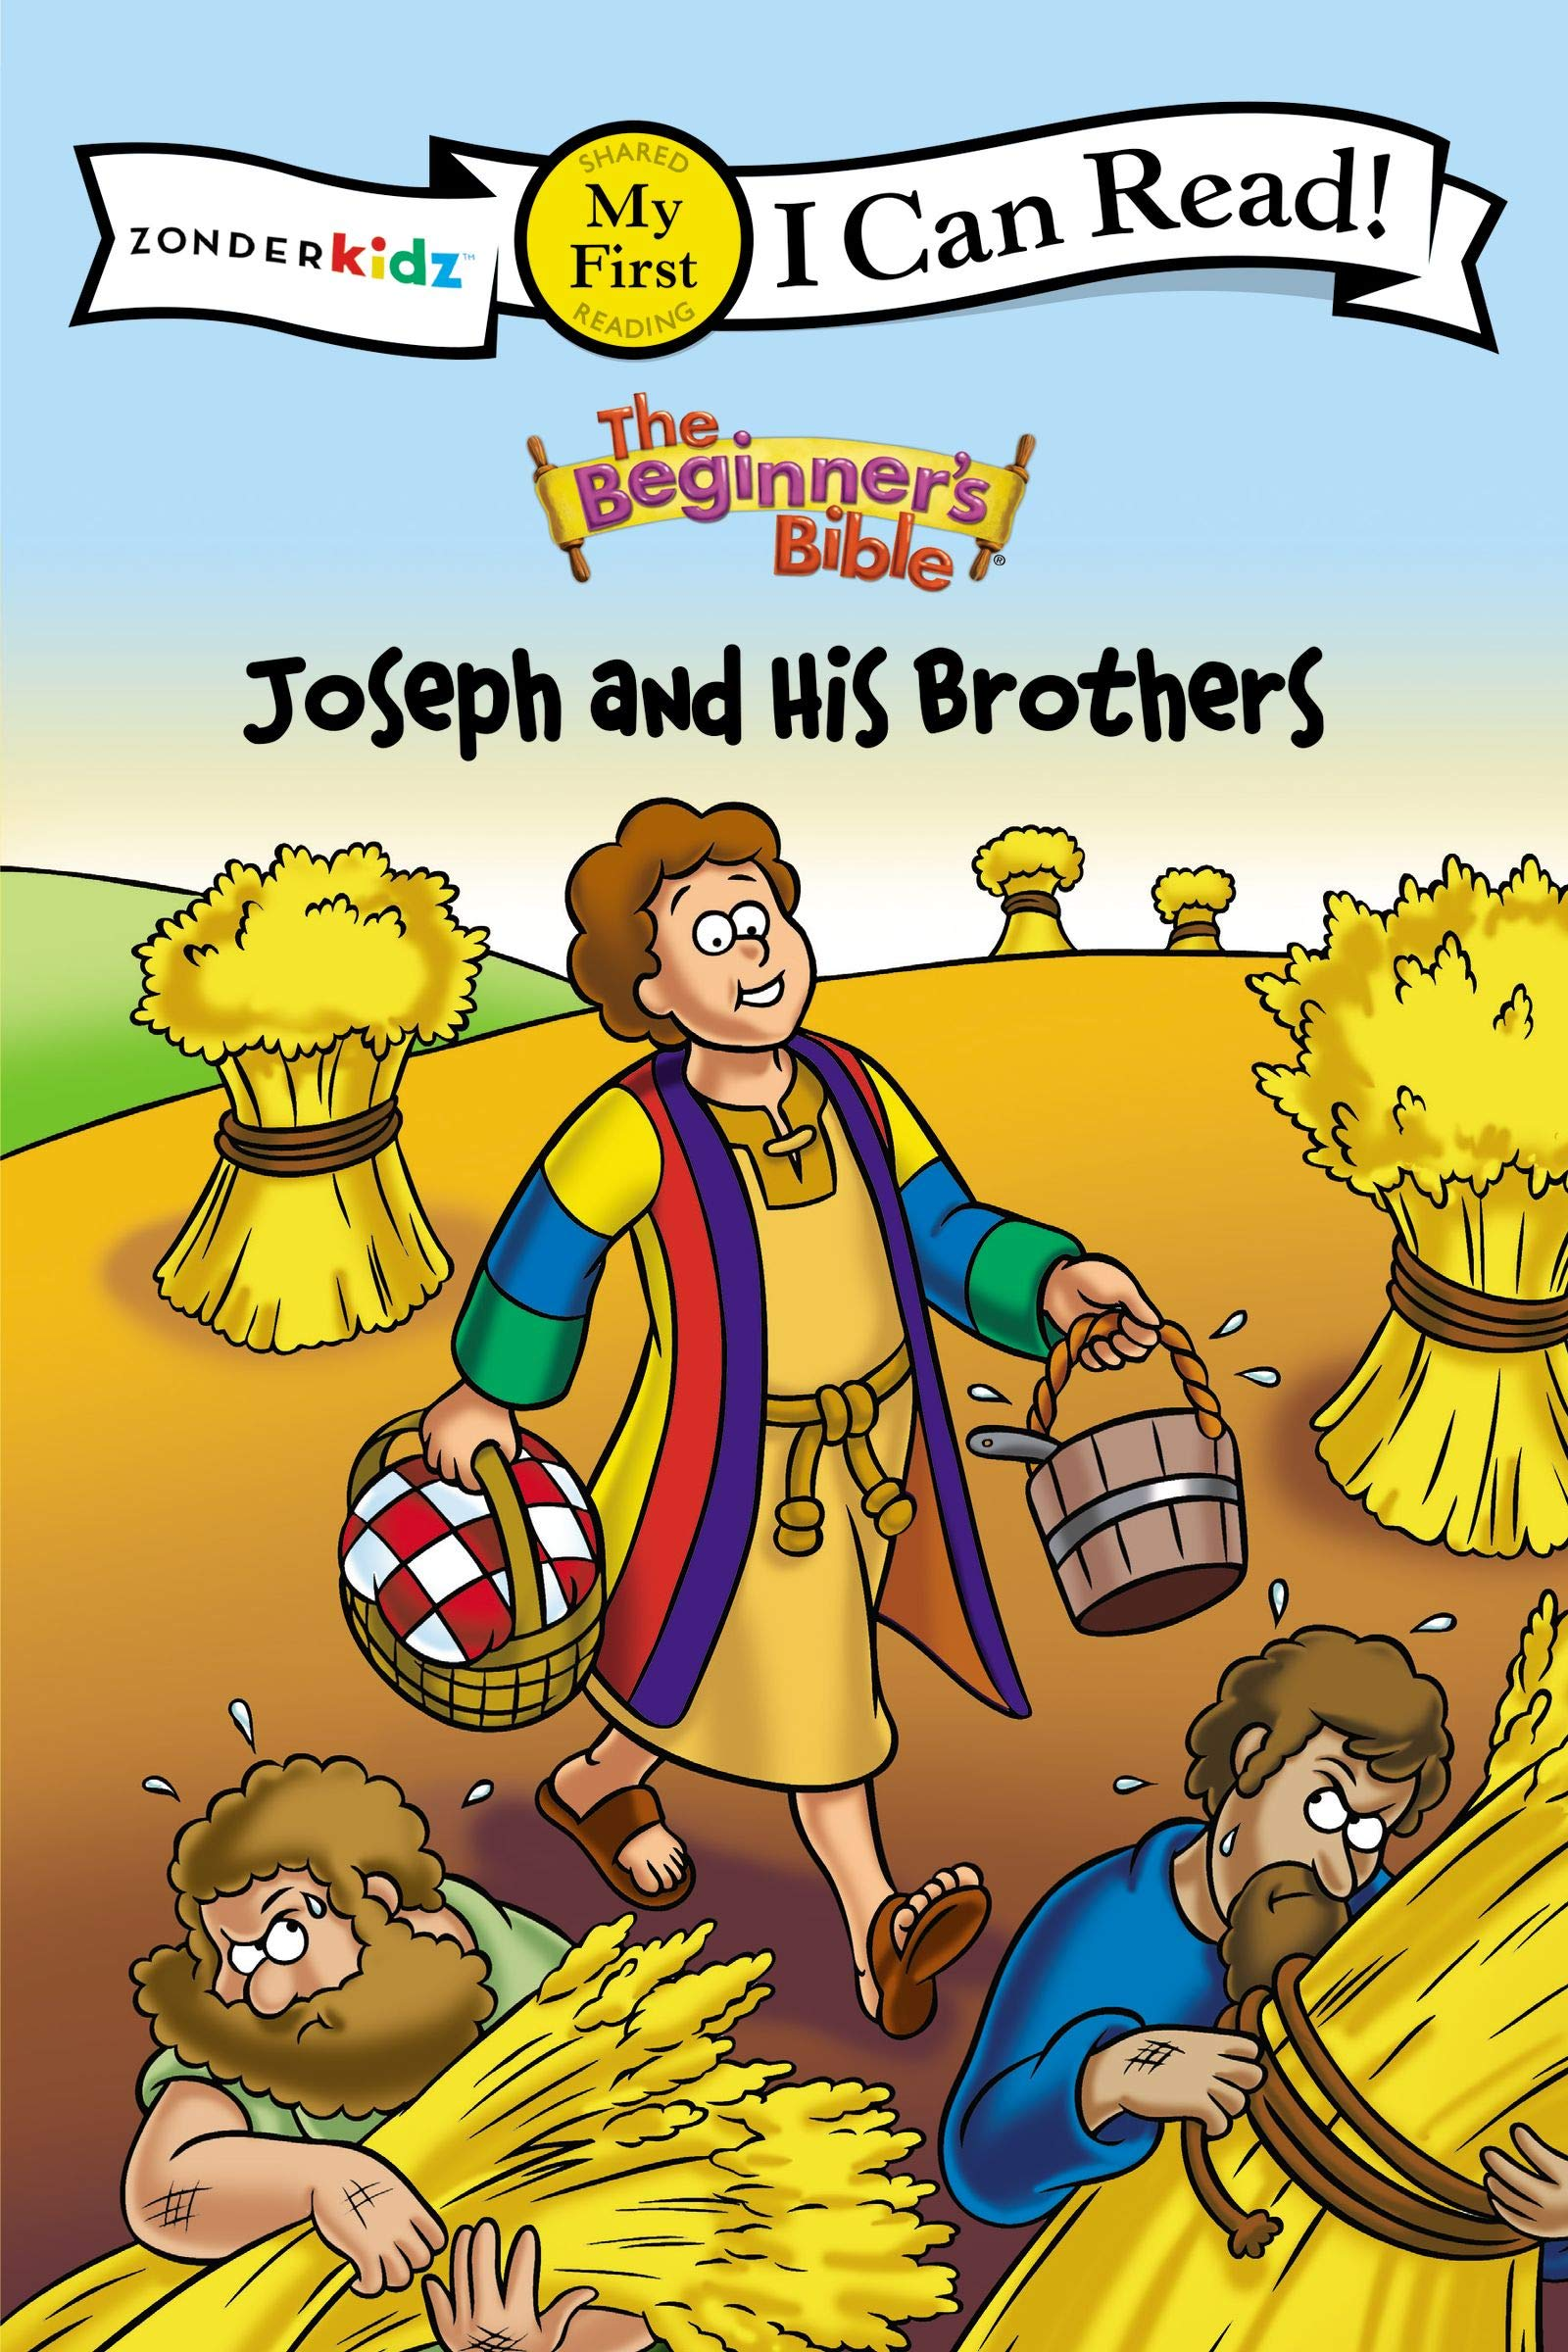 - Amazon.com: The Beginner's Bible Joseph And His Brothers: My First